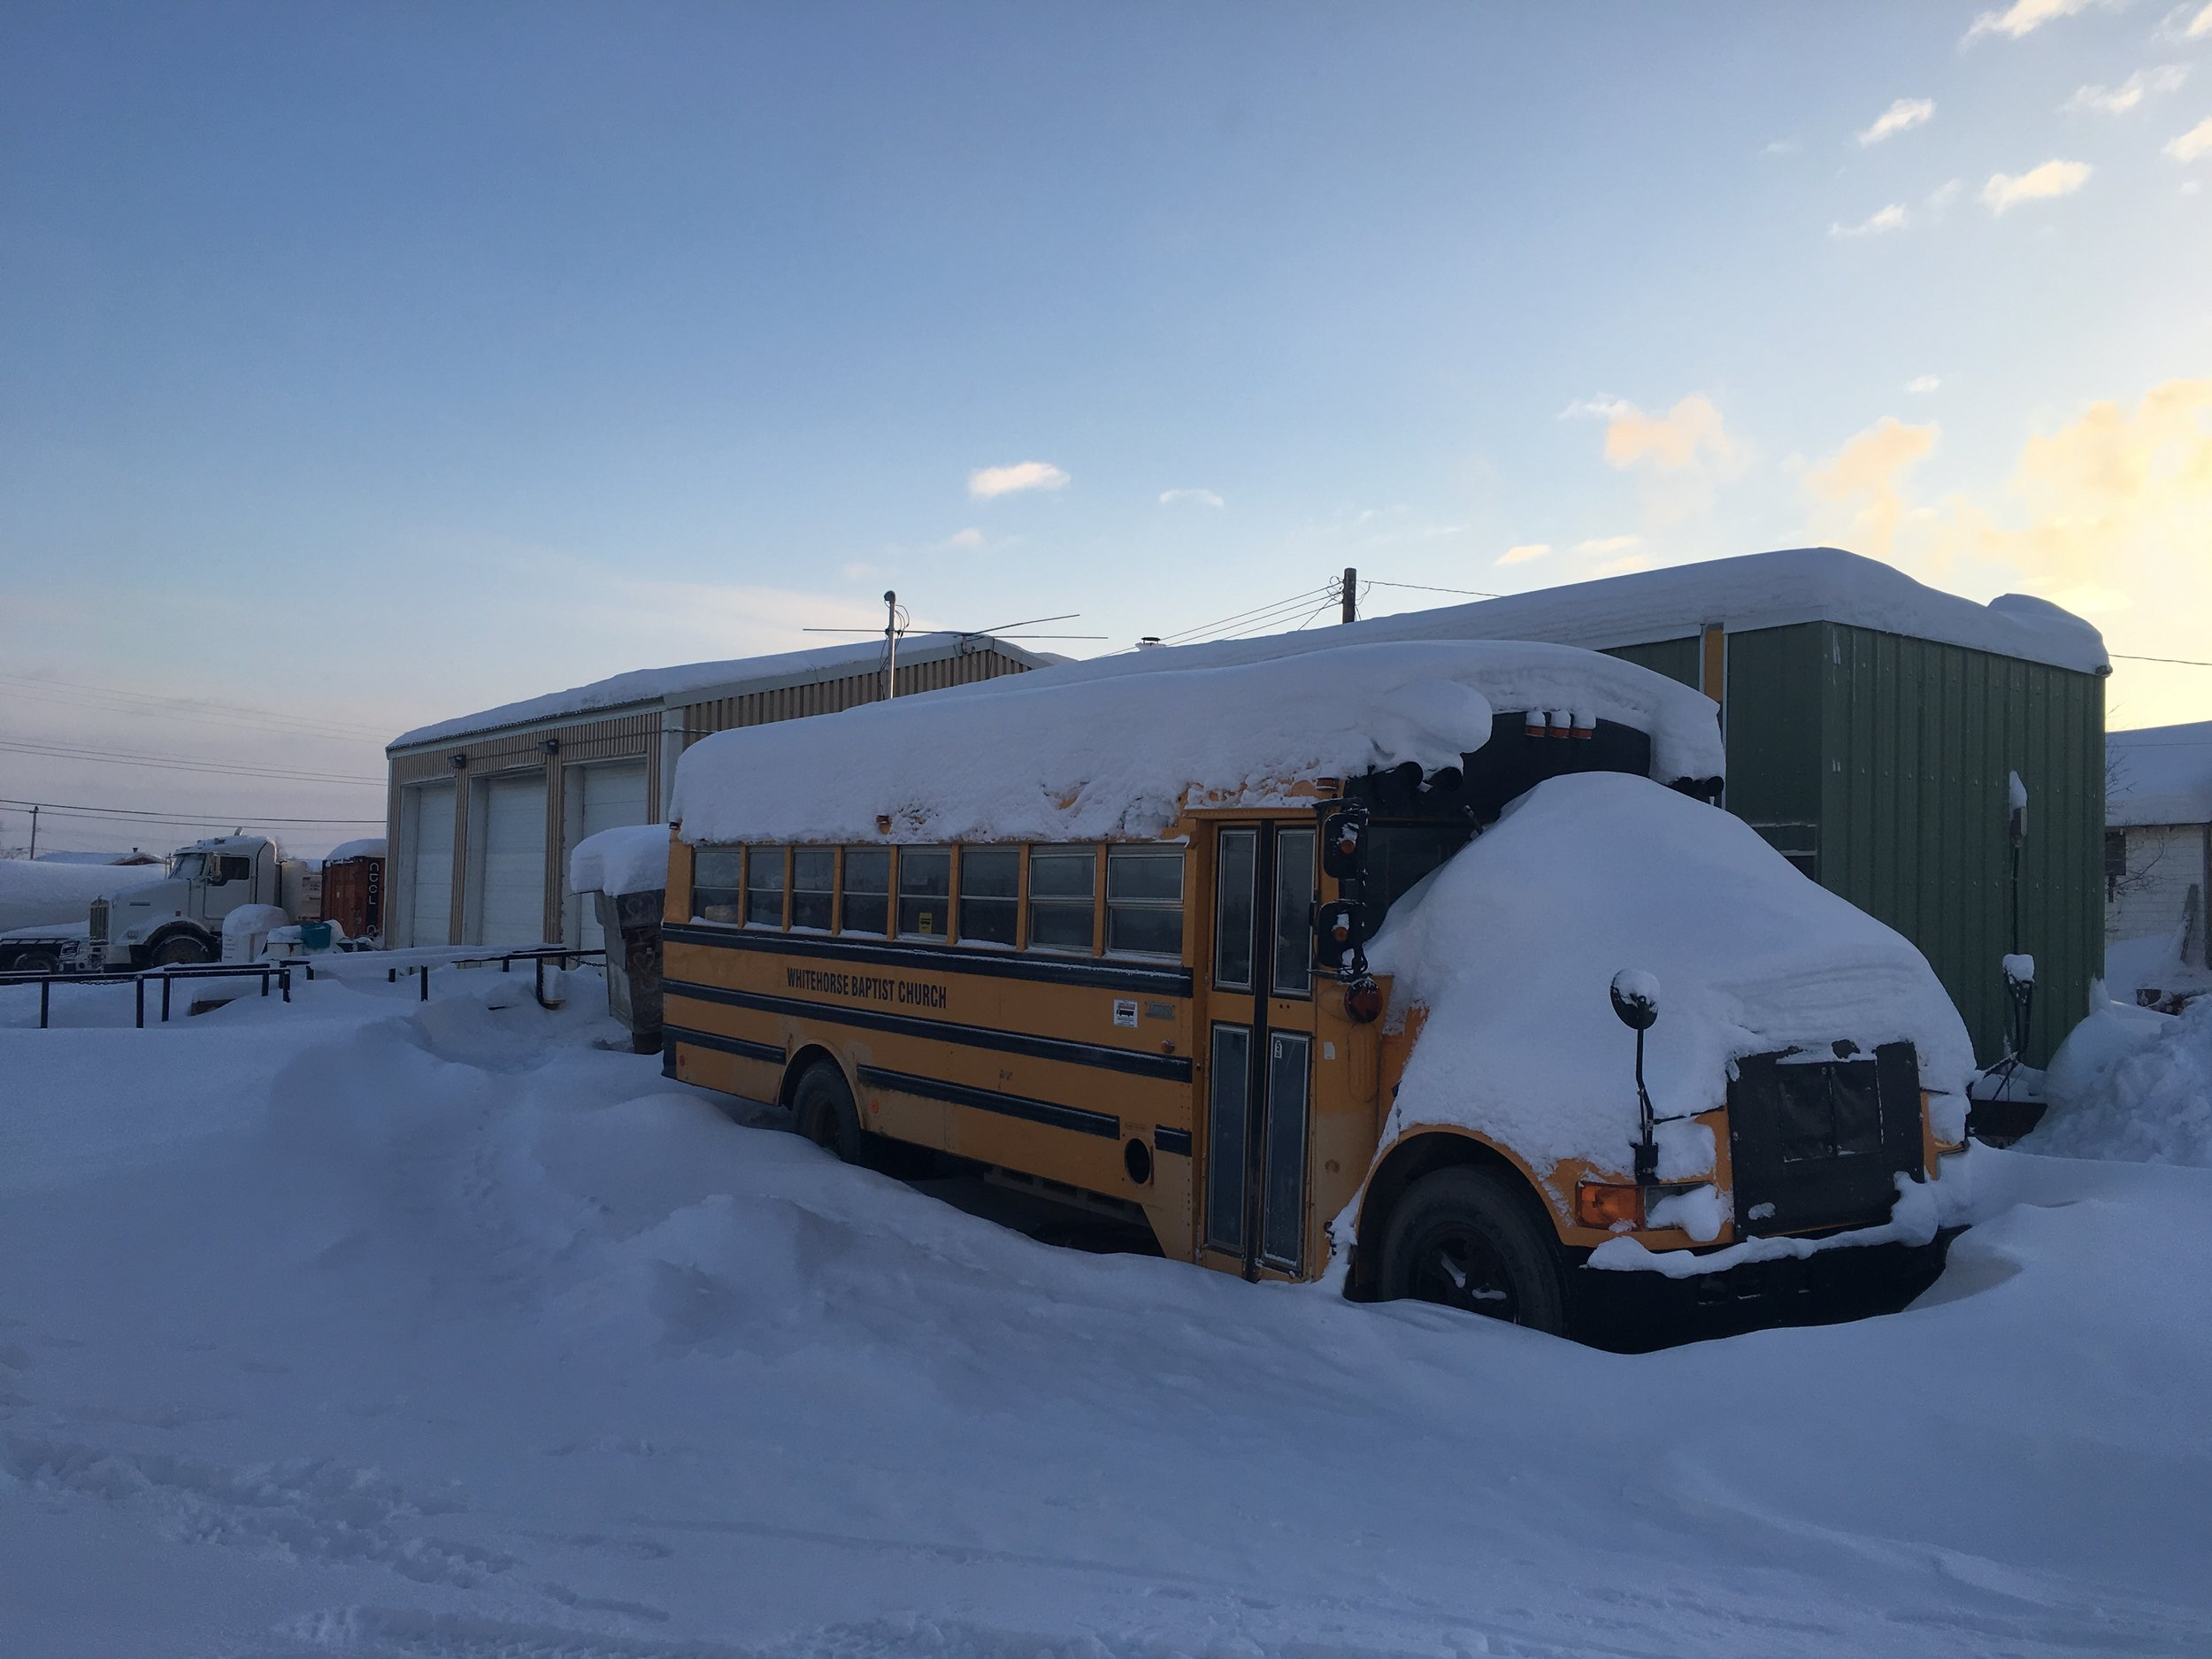 The resting school bus